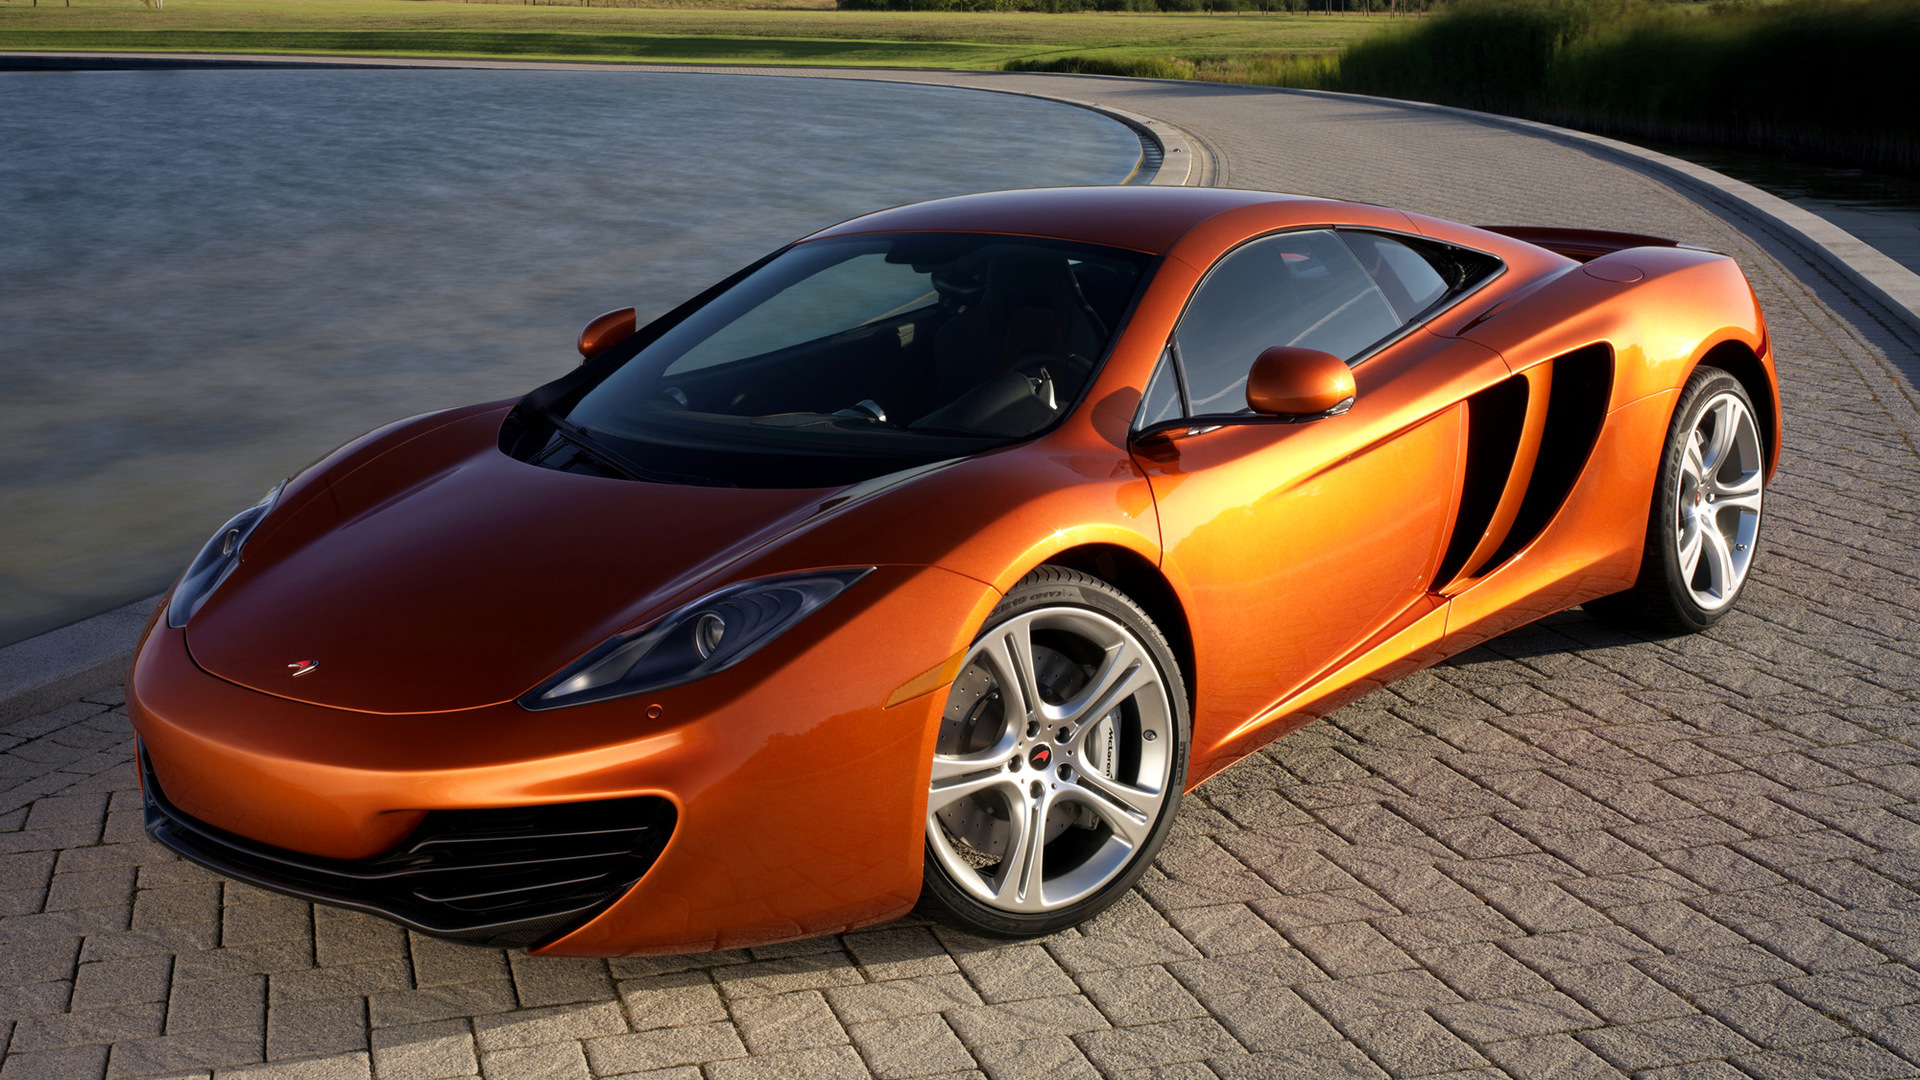 McLaren MP4-12C Prototype (2009) Wallpapers and HD Images